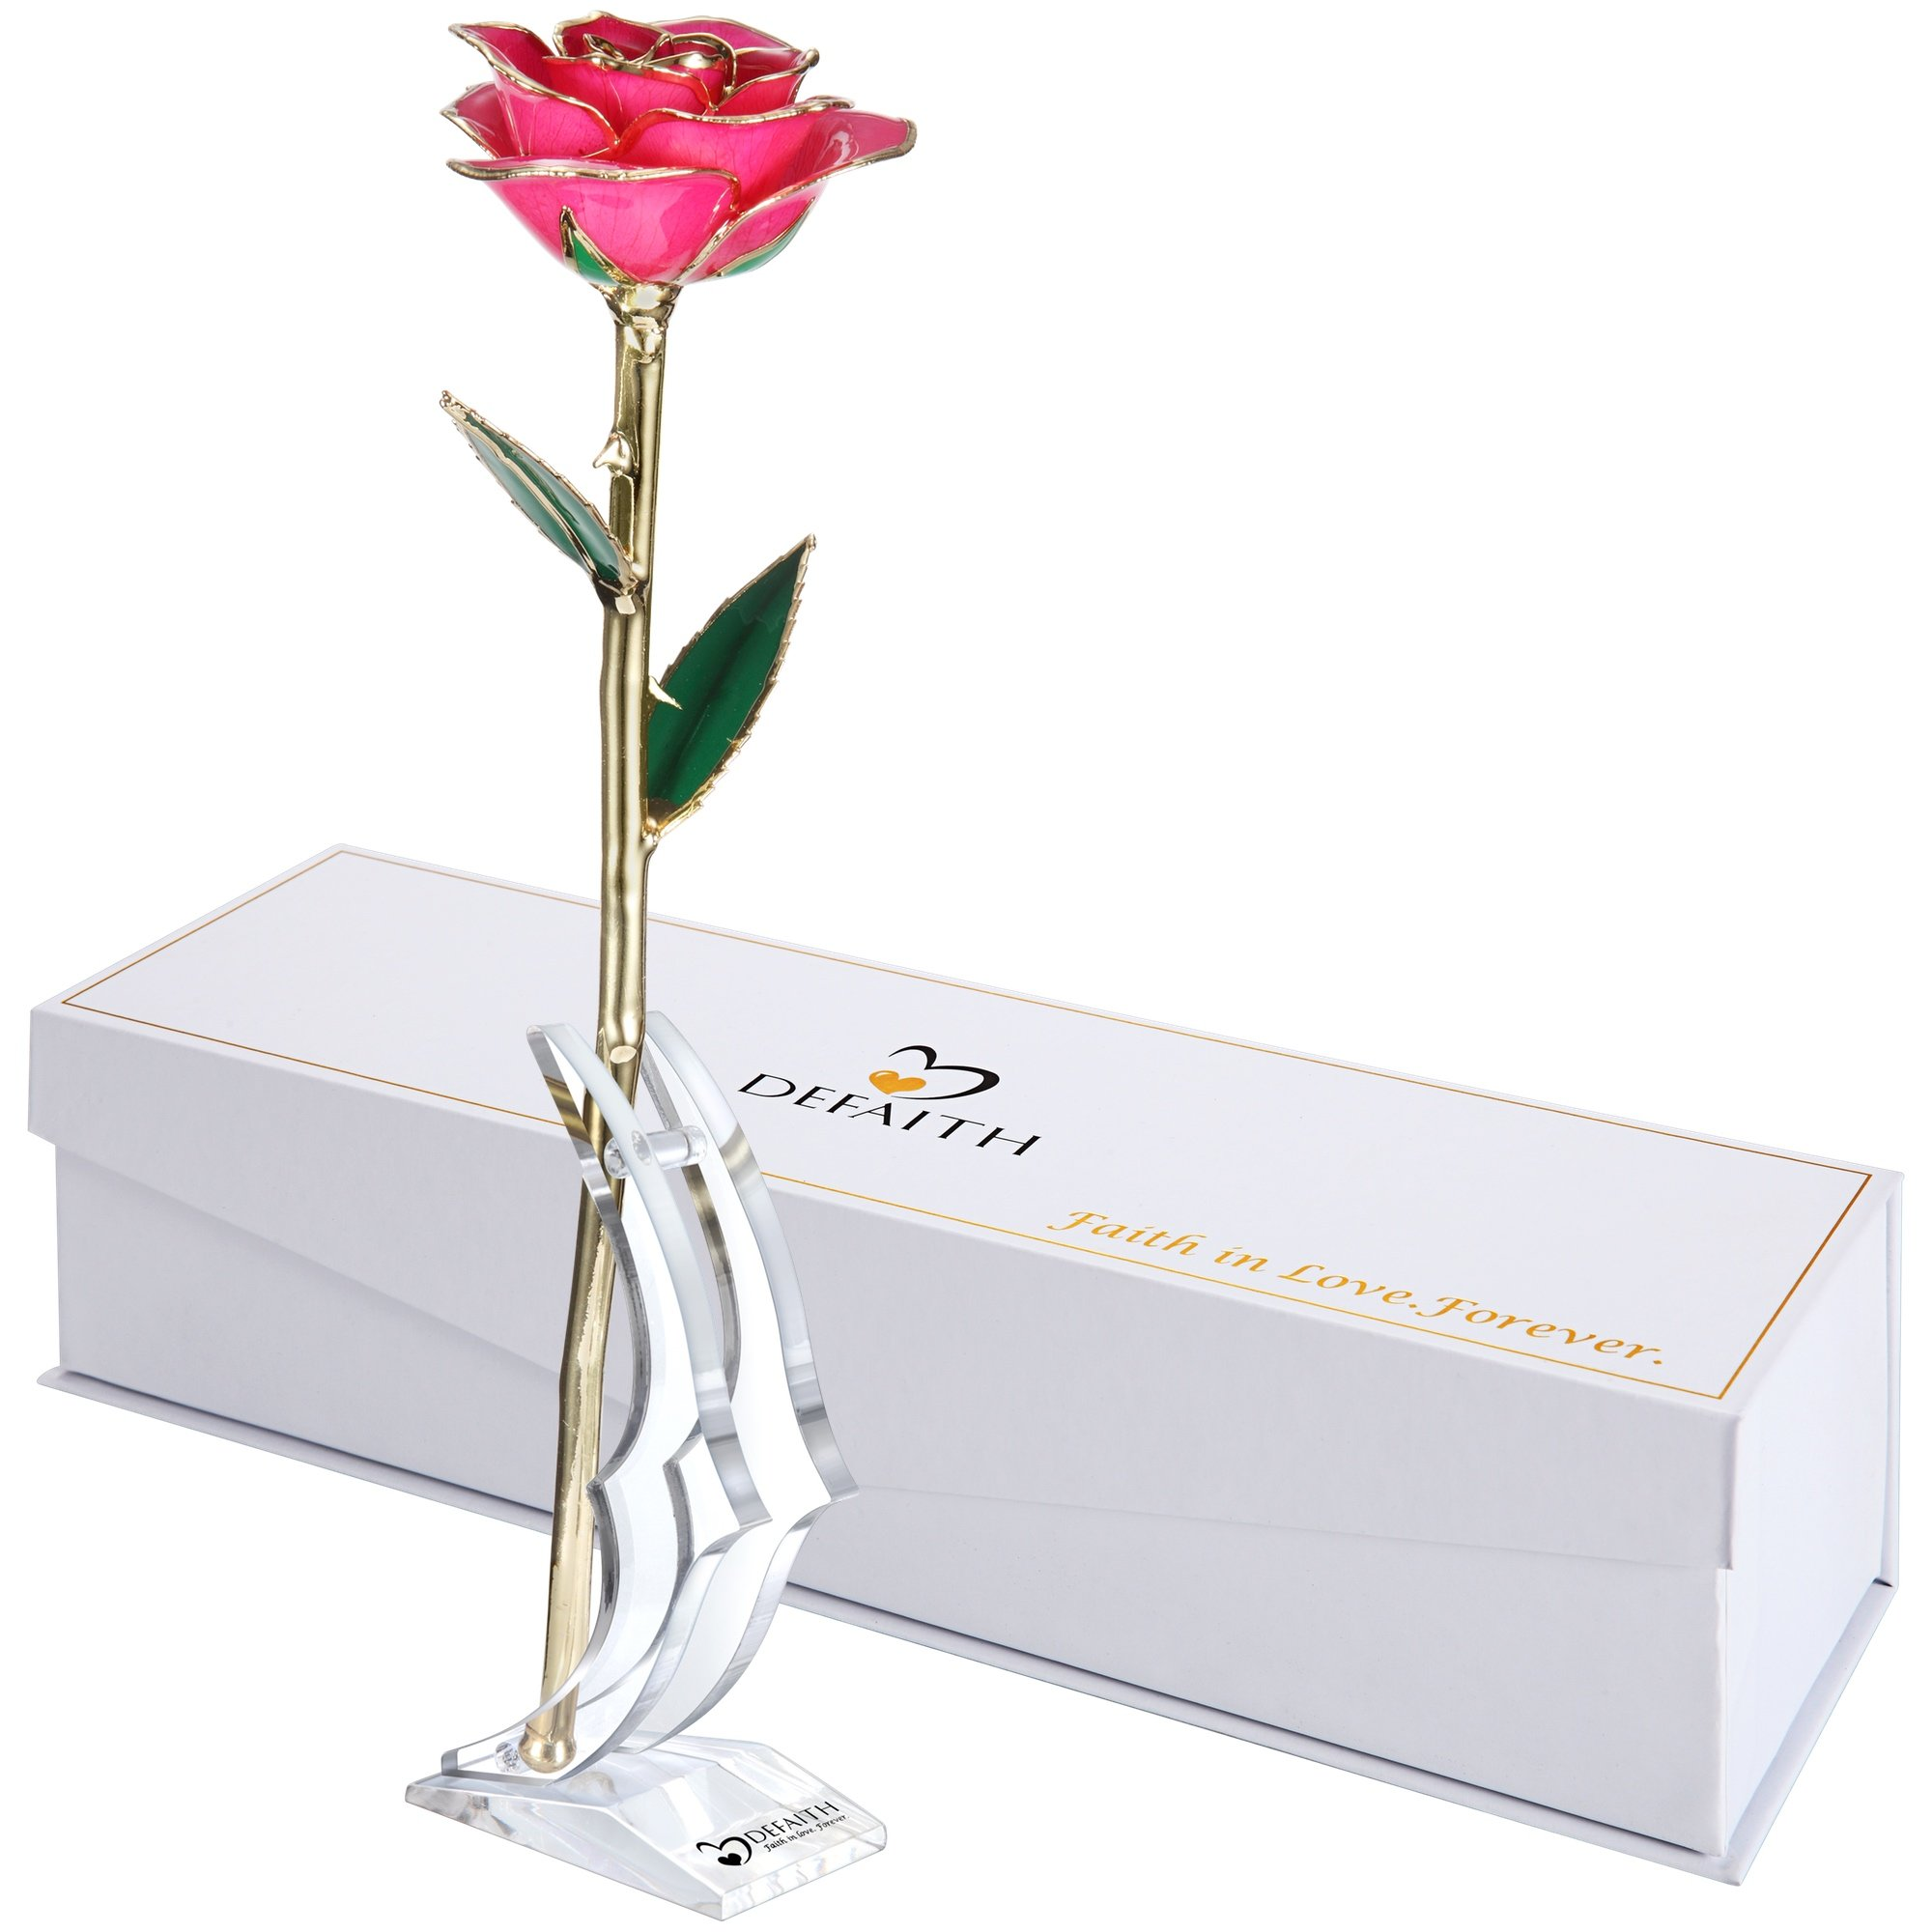 DeFaith Pink Gold Rose, Unique for Wife Girlfriend Her Women Mother, Made from Real Rose Flower with Stand